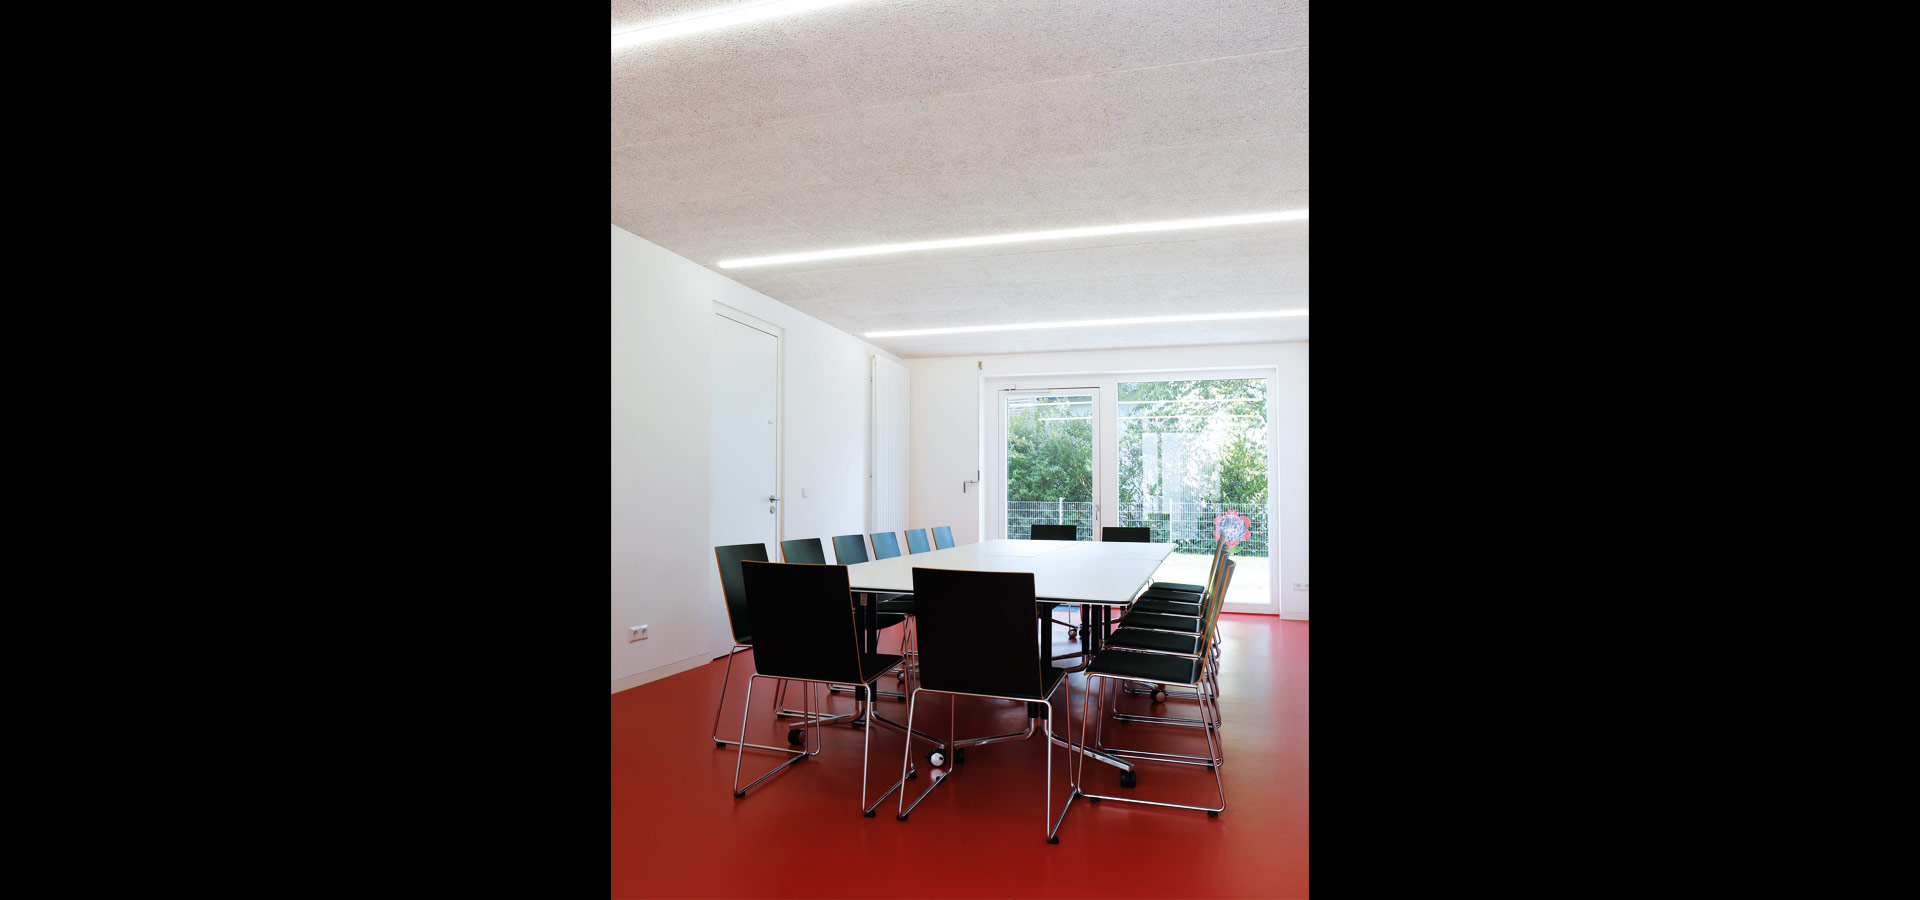 Luxsystem led luminaire lines of light community hall huchenfeld public spaces